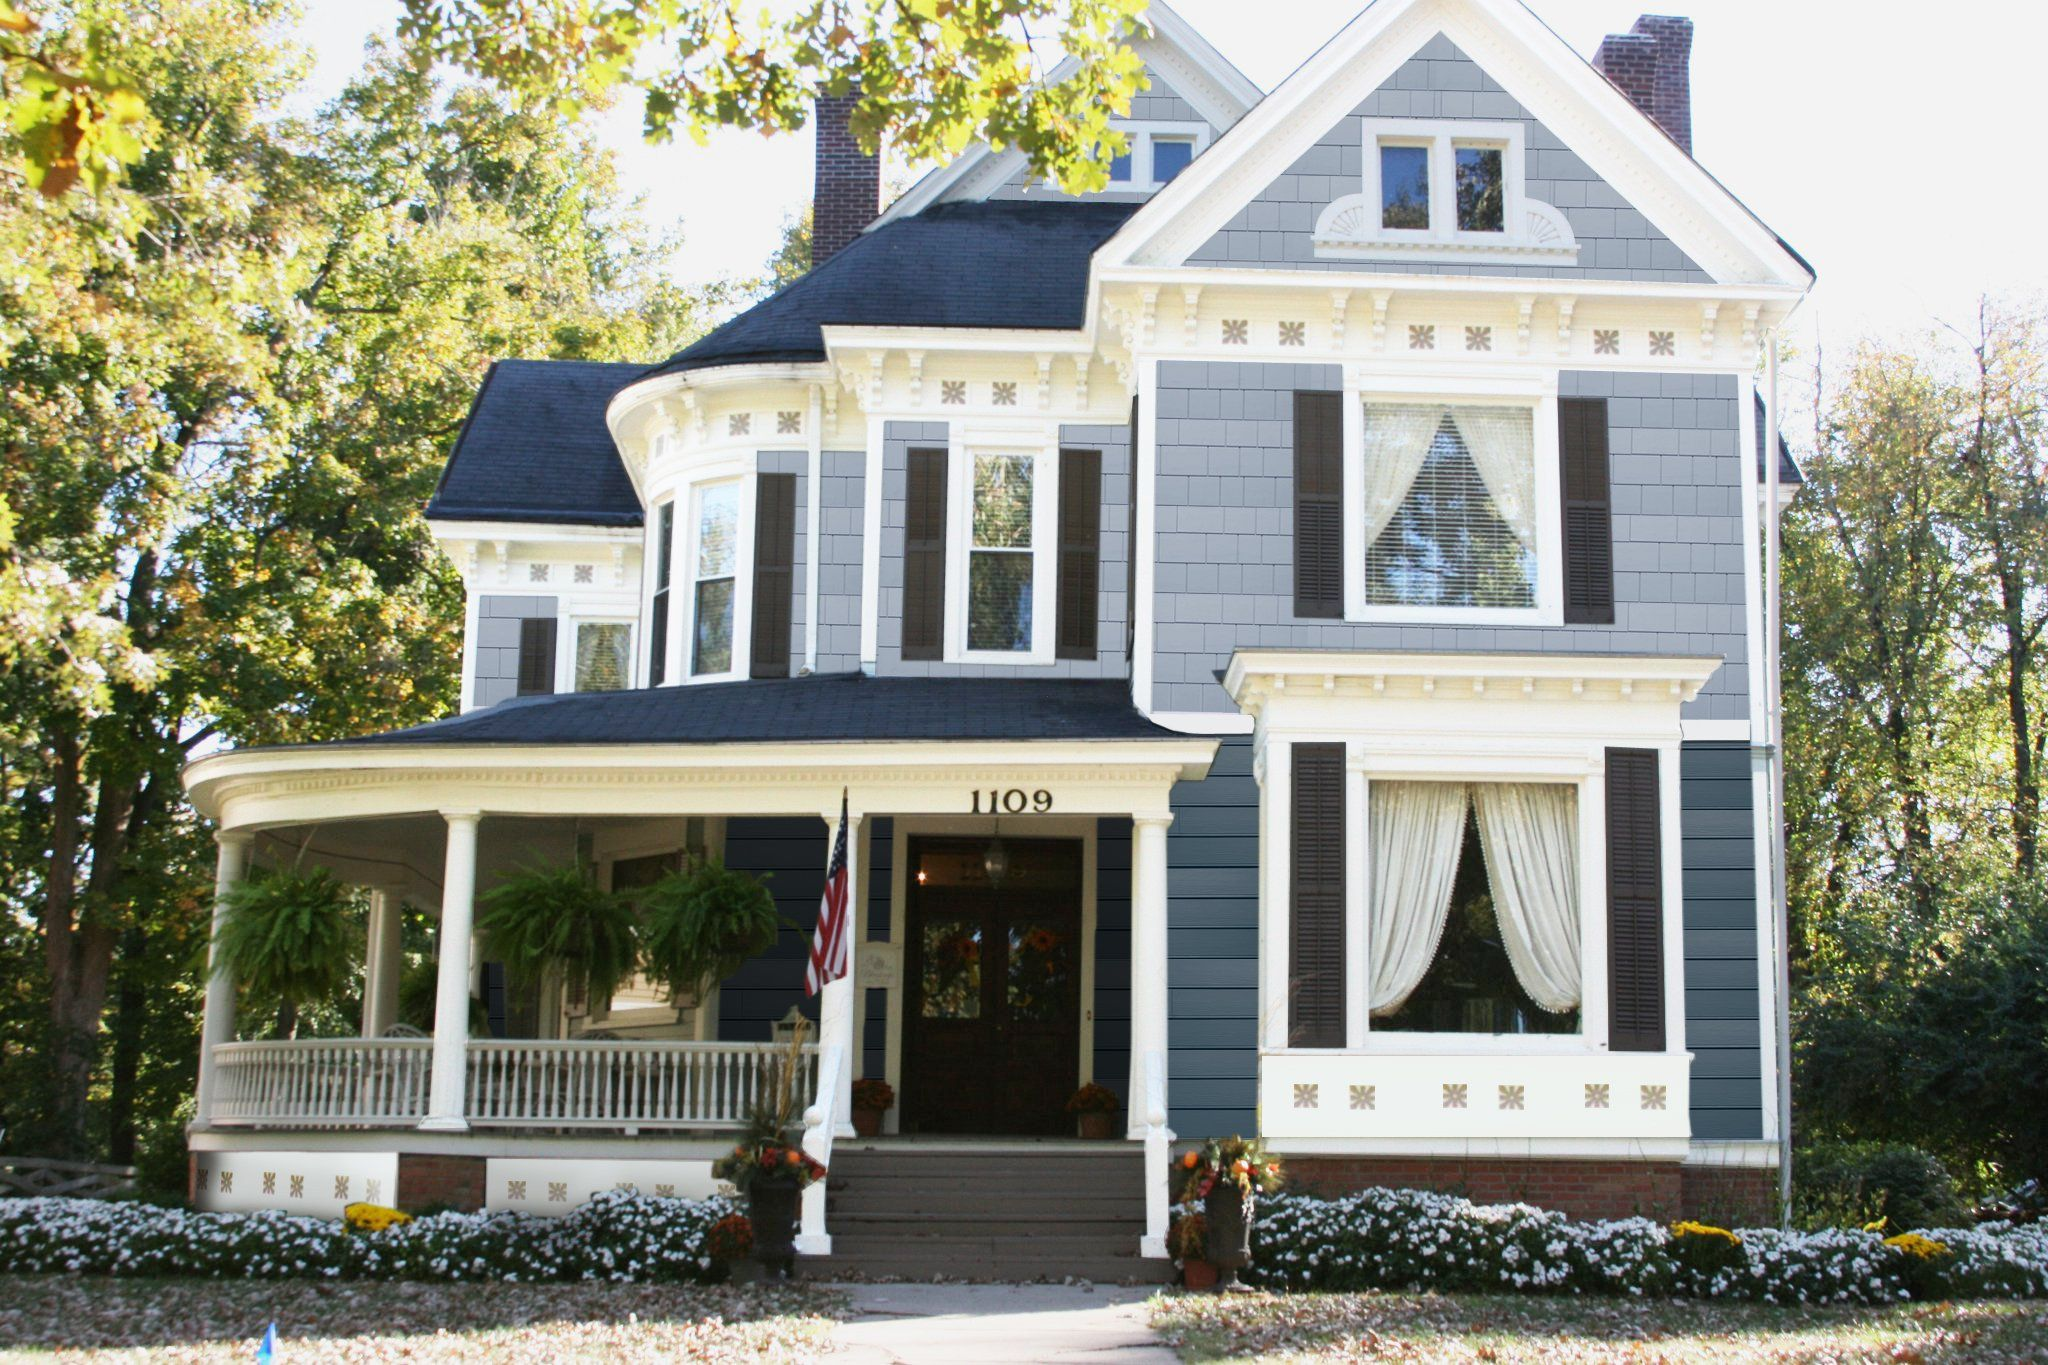 Fiber Cement Siding From James Hardie Dutch Colonial Exterior Colonial Exterior Victorian Homes